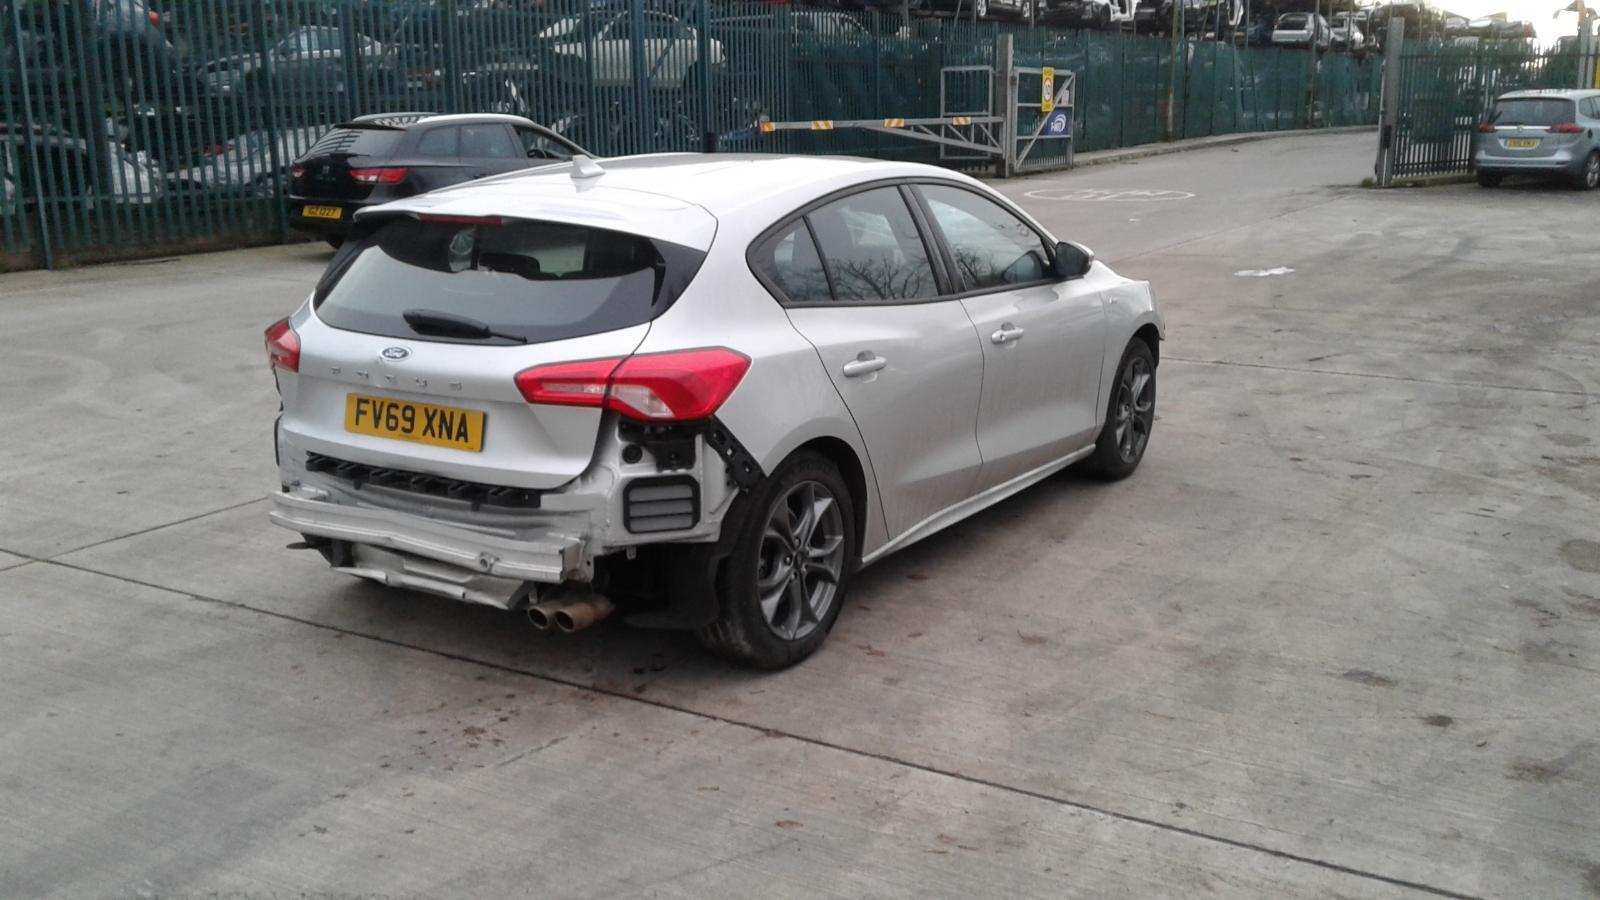 2019 FORD FOCUS ST-LINE £8600 ONO Image